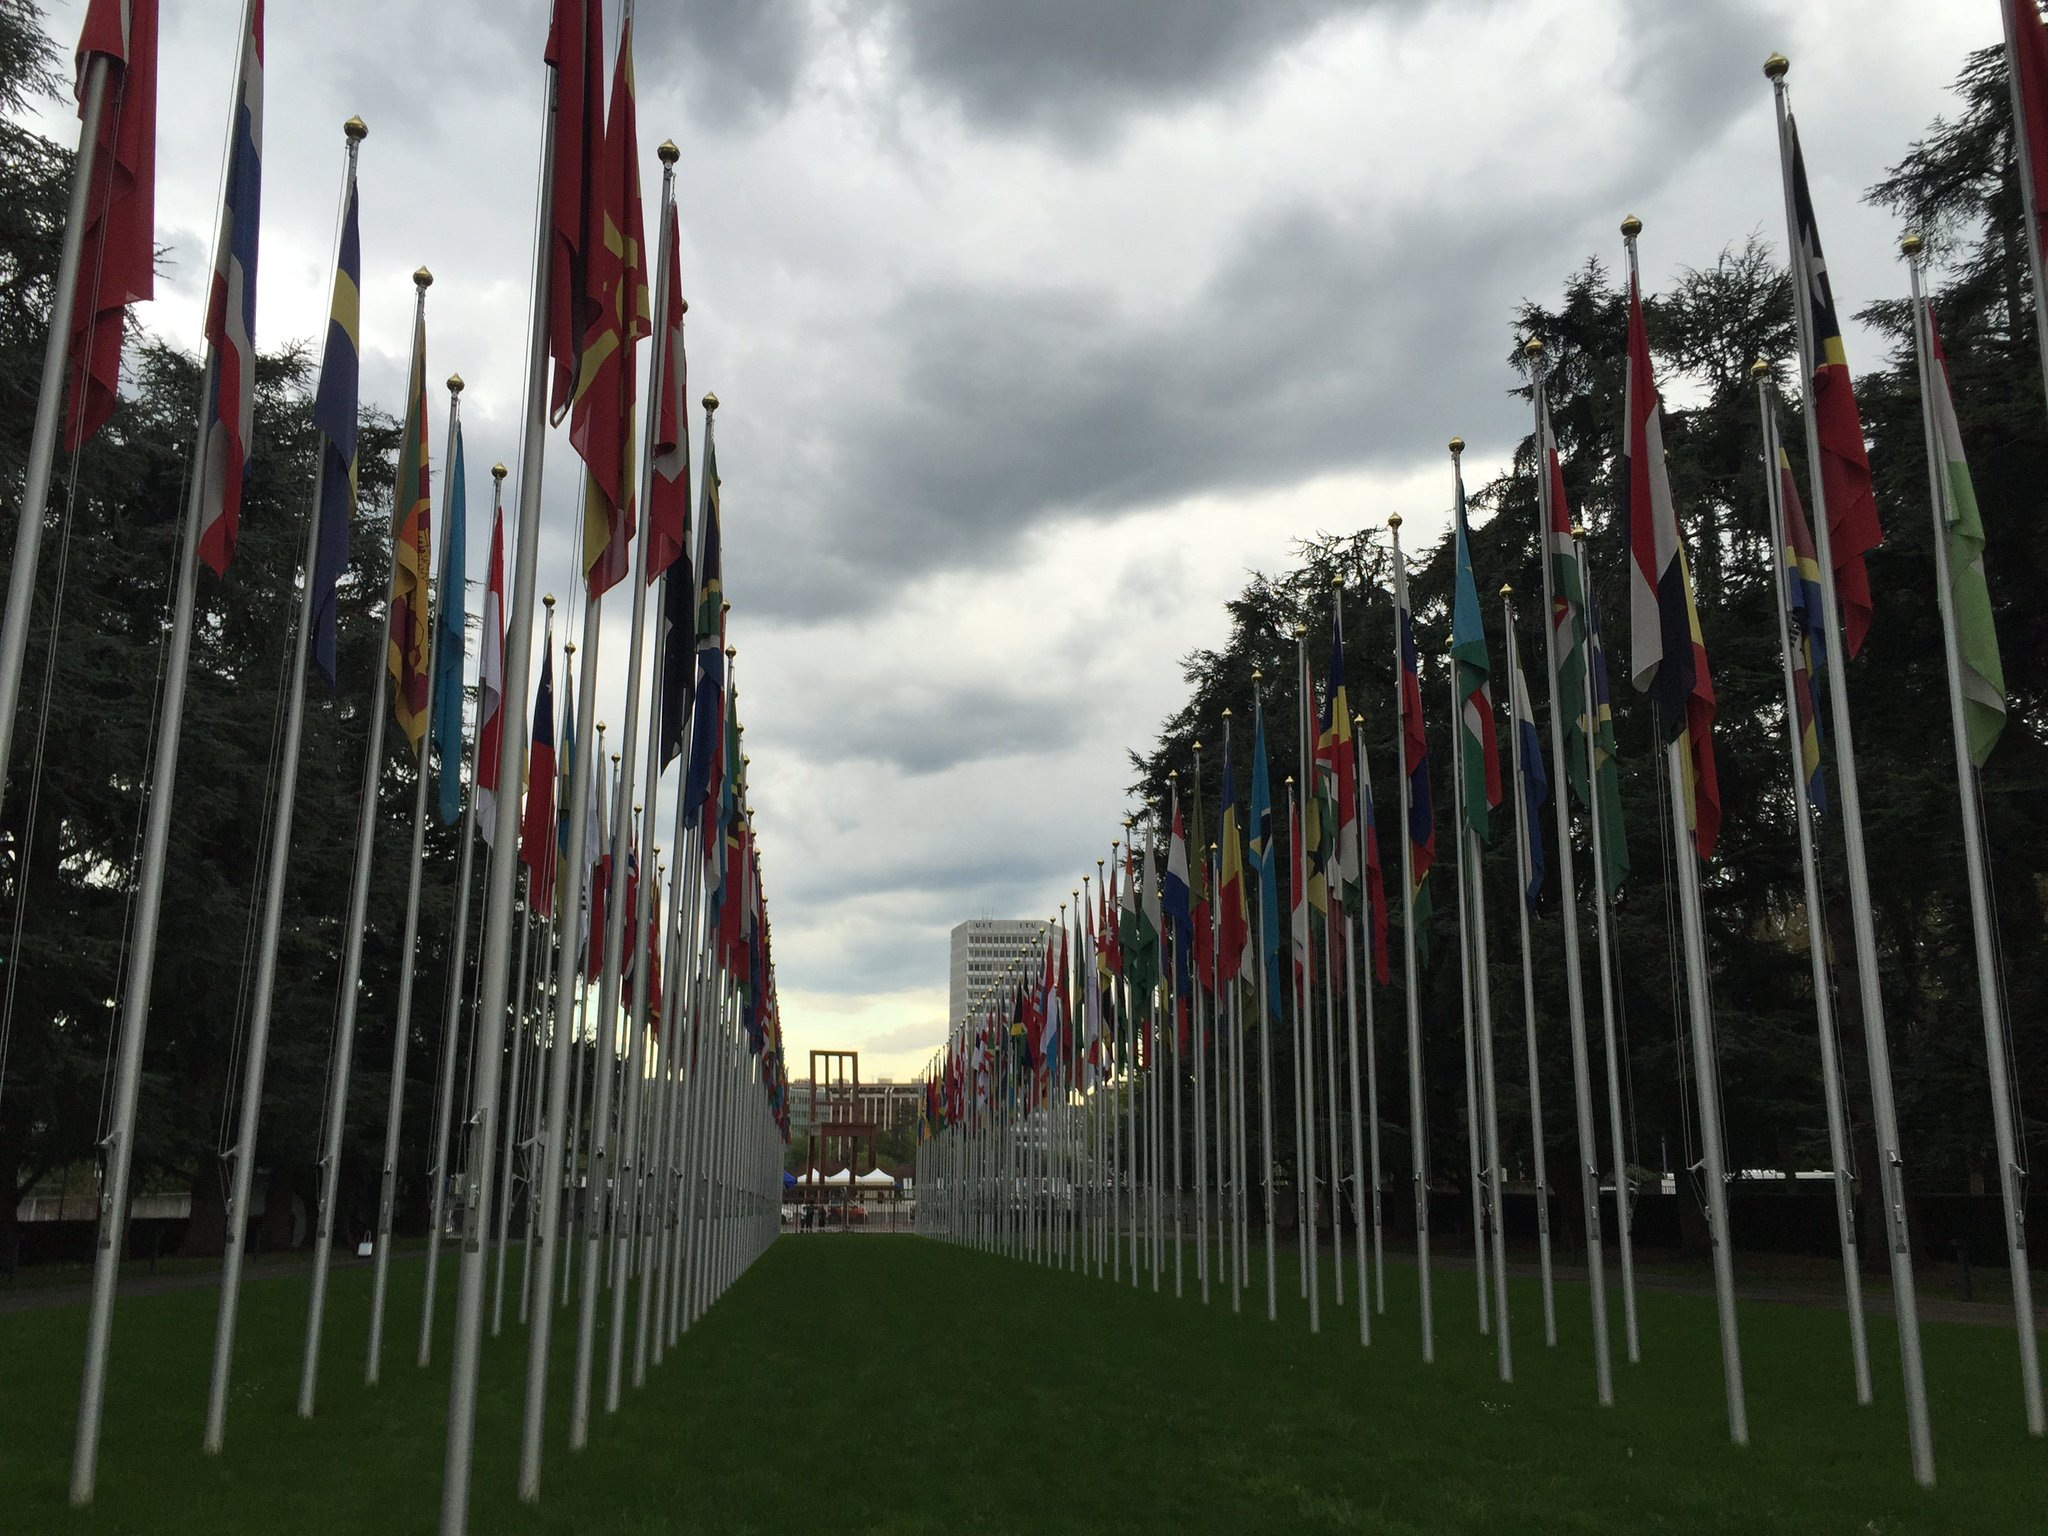 Our campaigners are in #Geneva for 5th Review Conference of Convention on Conventional Weapons aka #CCWUN https://t.co/TZwGP8ezxF @UNGeneva https://t.co/l5kORXUYNW